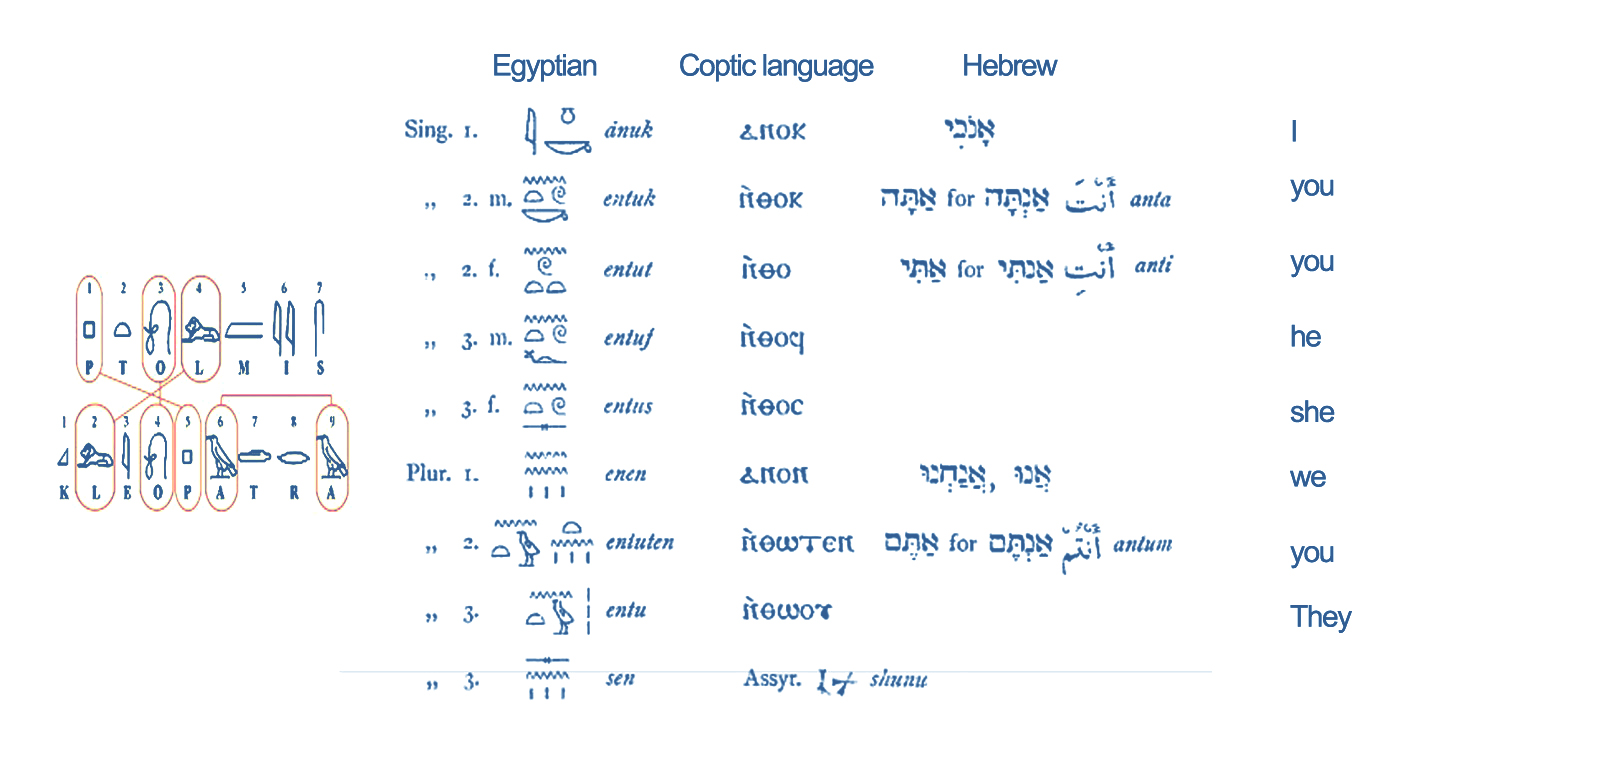 Why don't more Egyptians learn to speak Coptic? Is it not ...